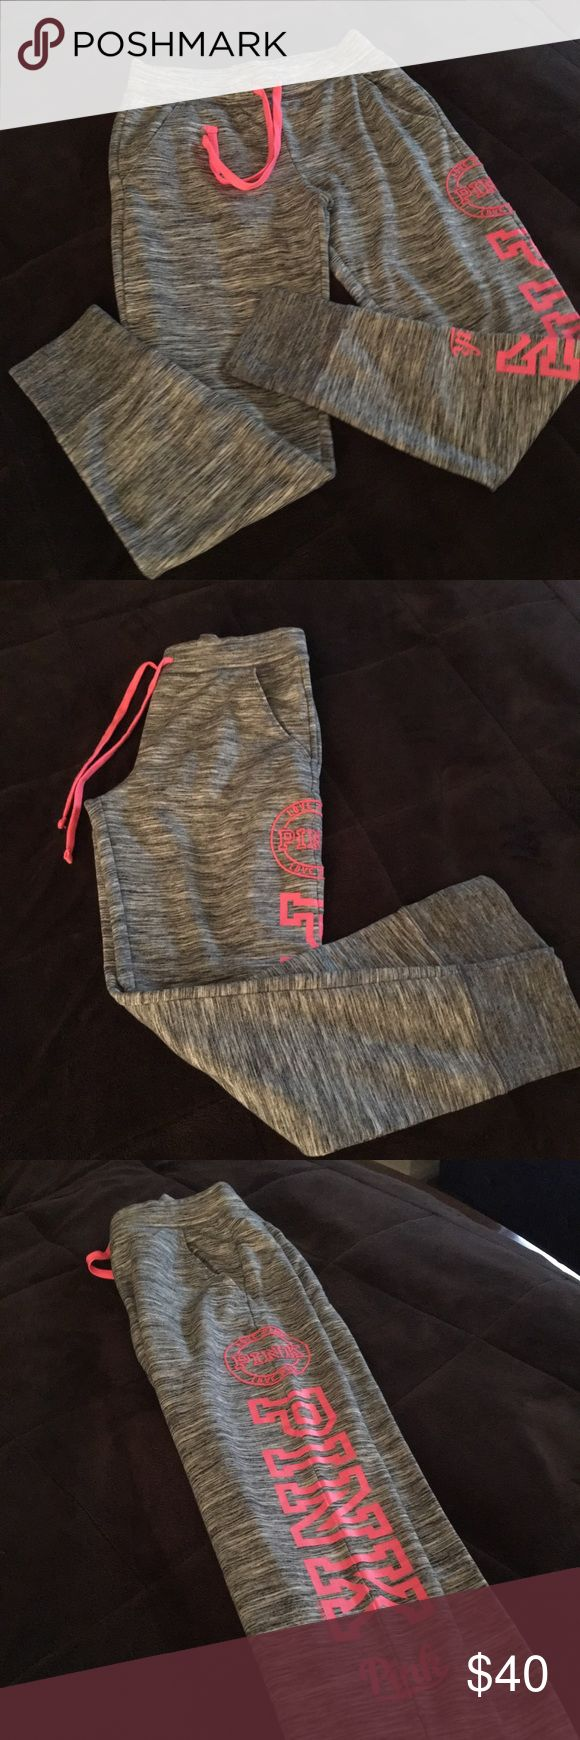 Victoria Secret sweatpants 💗 Victoria Secret brand new, size small jogger style sweatpants.     These have never been worn and are in perfect condition!! PINK Victoria's Secret Pants Track Pants & Joggers